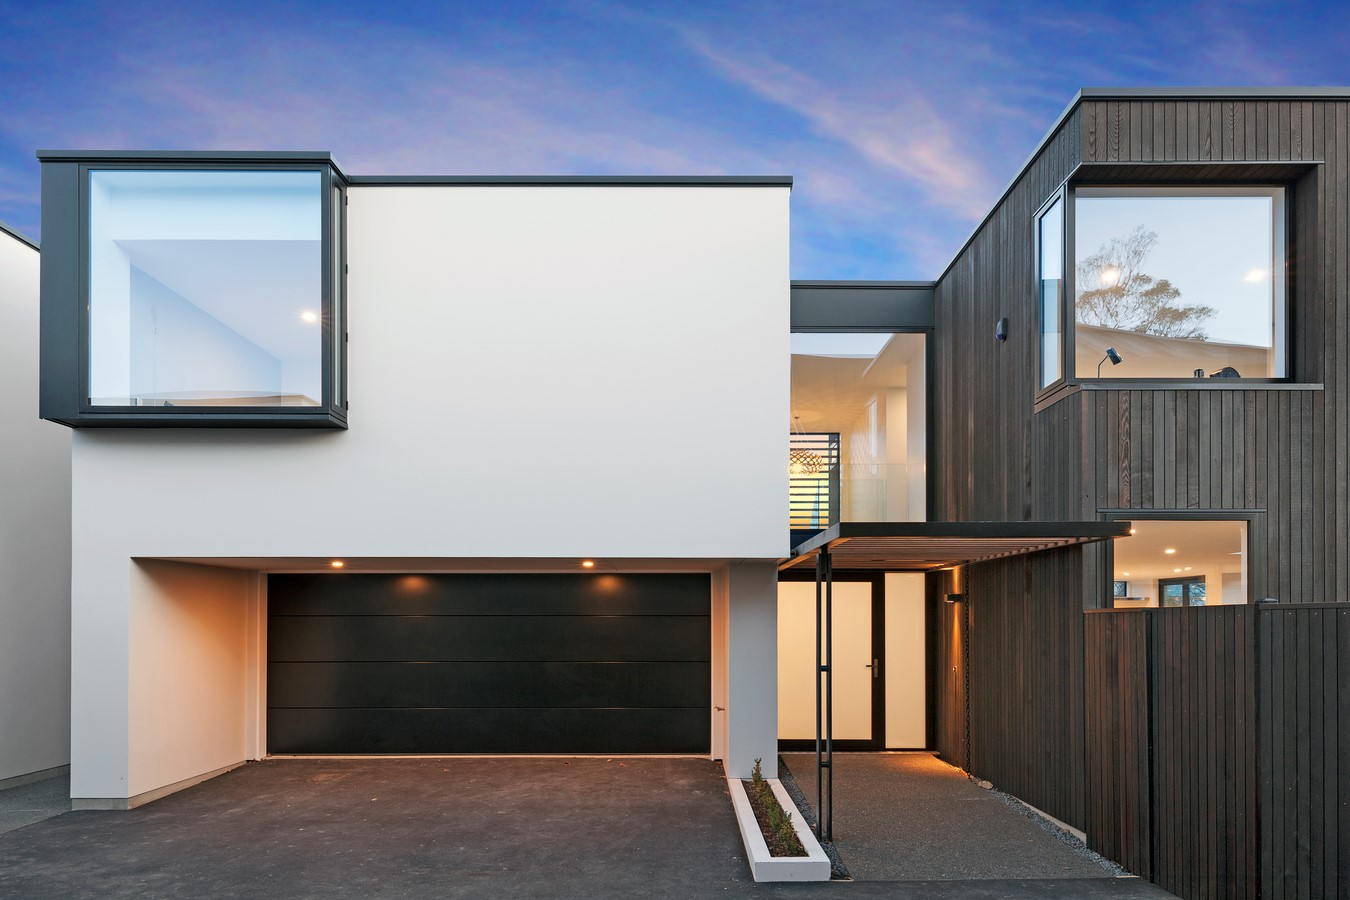 Durham Street Townhouses by Borrmeister Architects Ltd - Sheet1